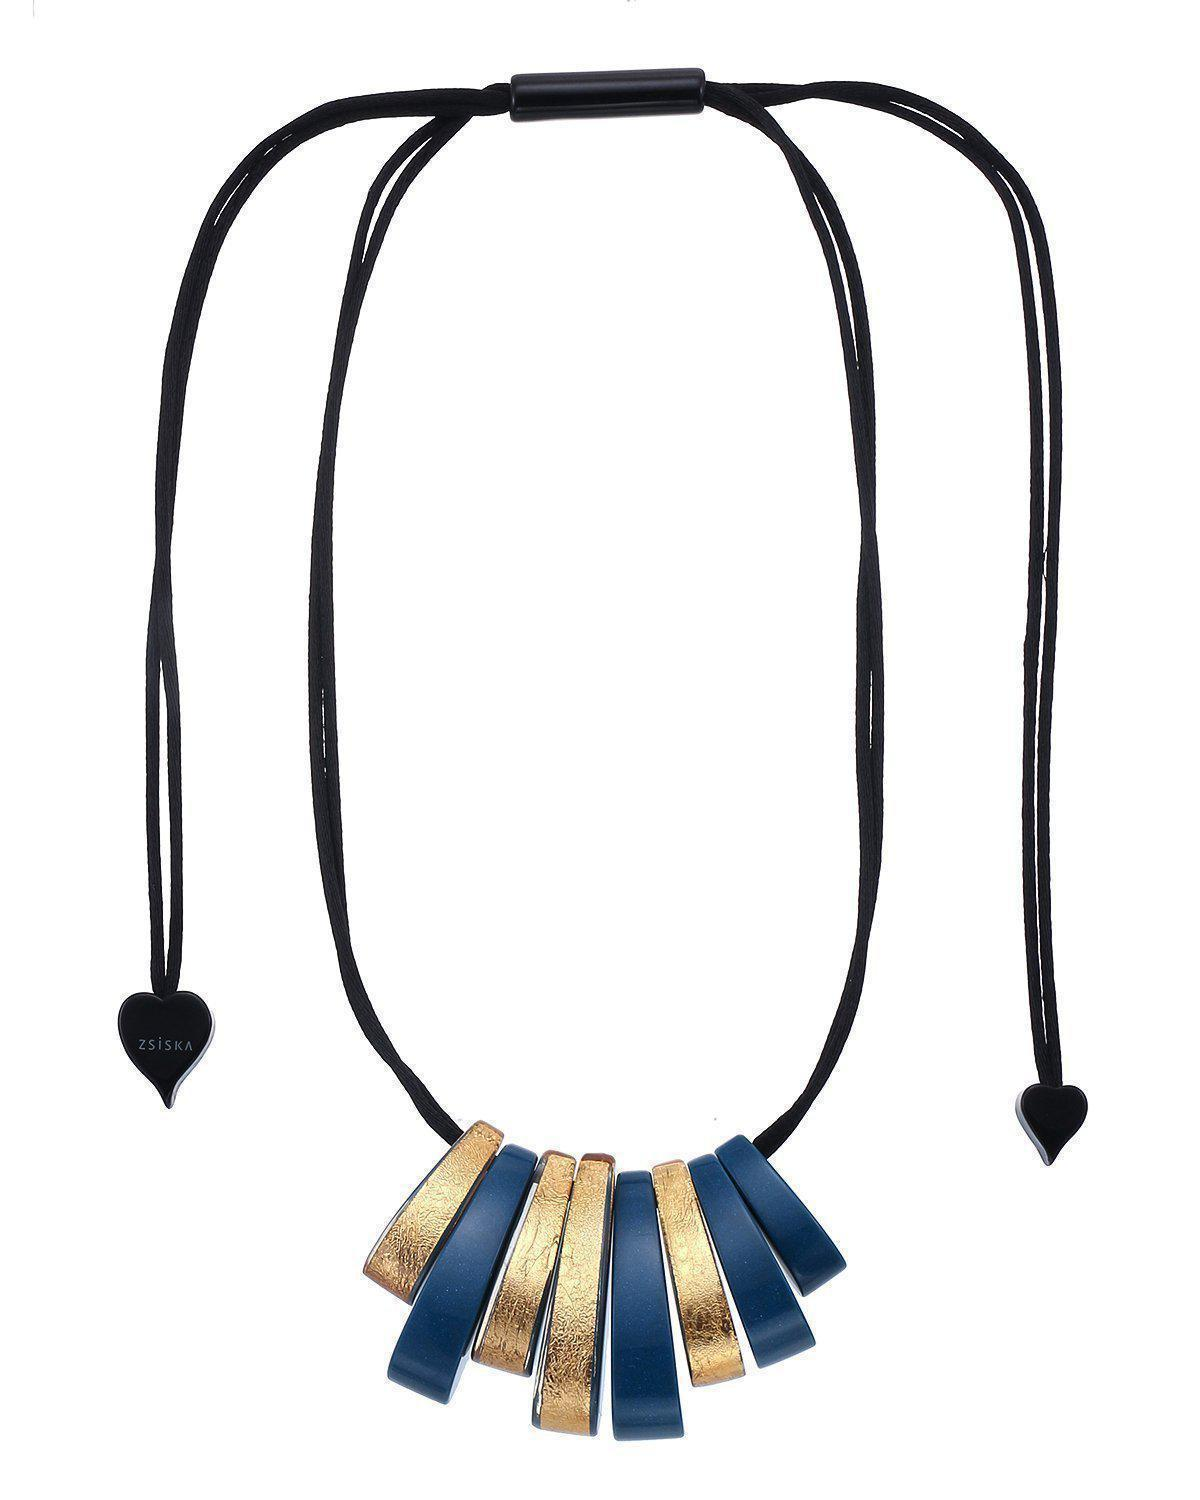 Zsiska Vogue Teal Blue and Gold Necklace-Jewellery-Zsiska-Temples and Markets